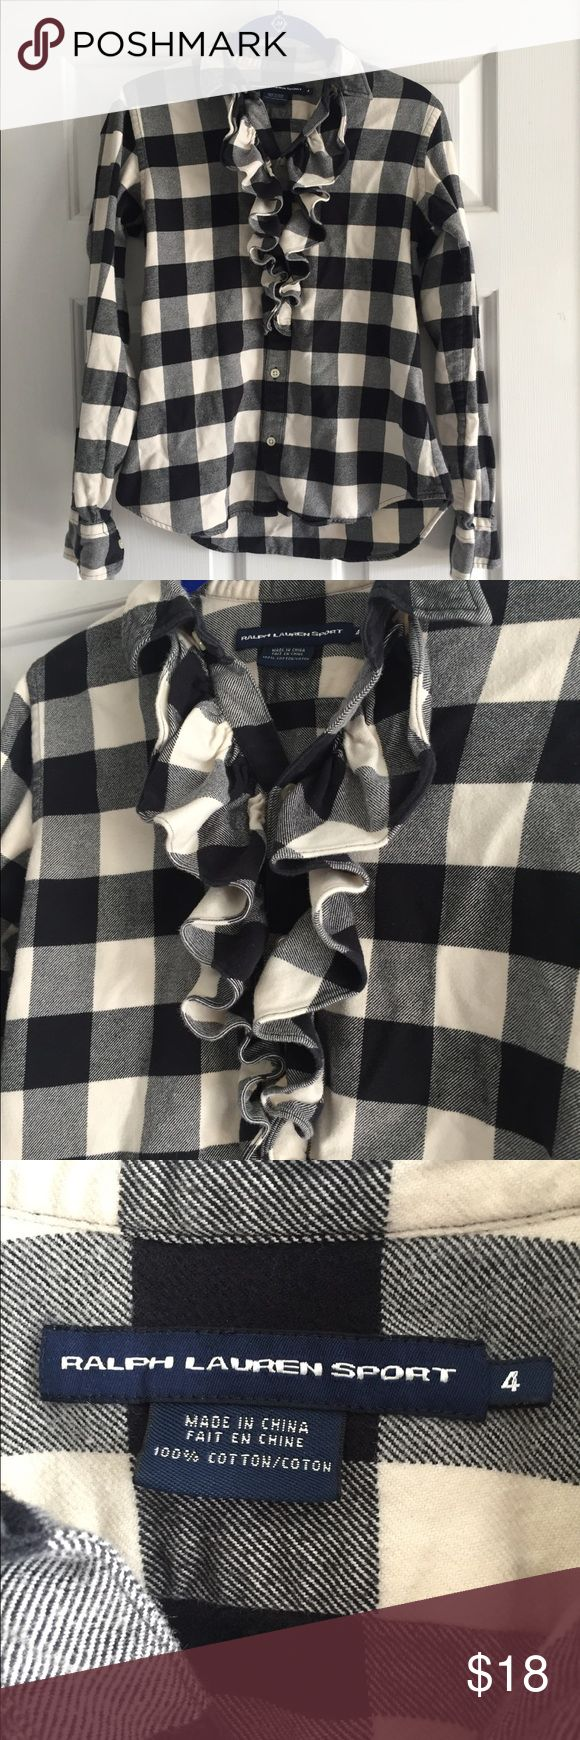 Ralph Lauren ruffled flannel shirt Stay warm and cozy and still look adorable with this Ralph Lauren ruffled flannel blouse! Gently used and in great condition. Ralph Lauren Tops Button Down Shirts